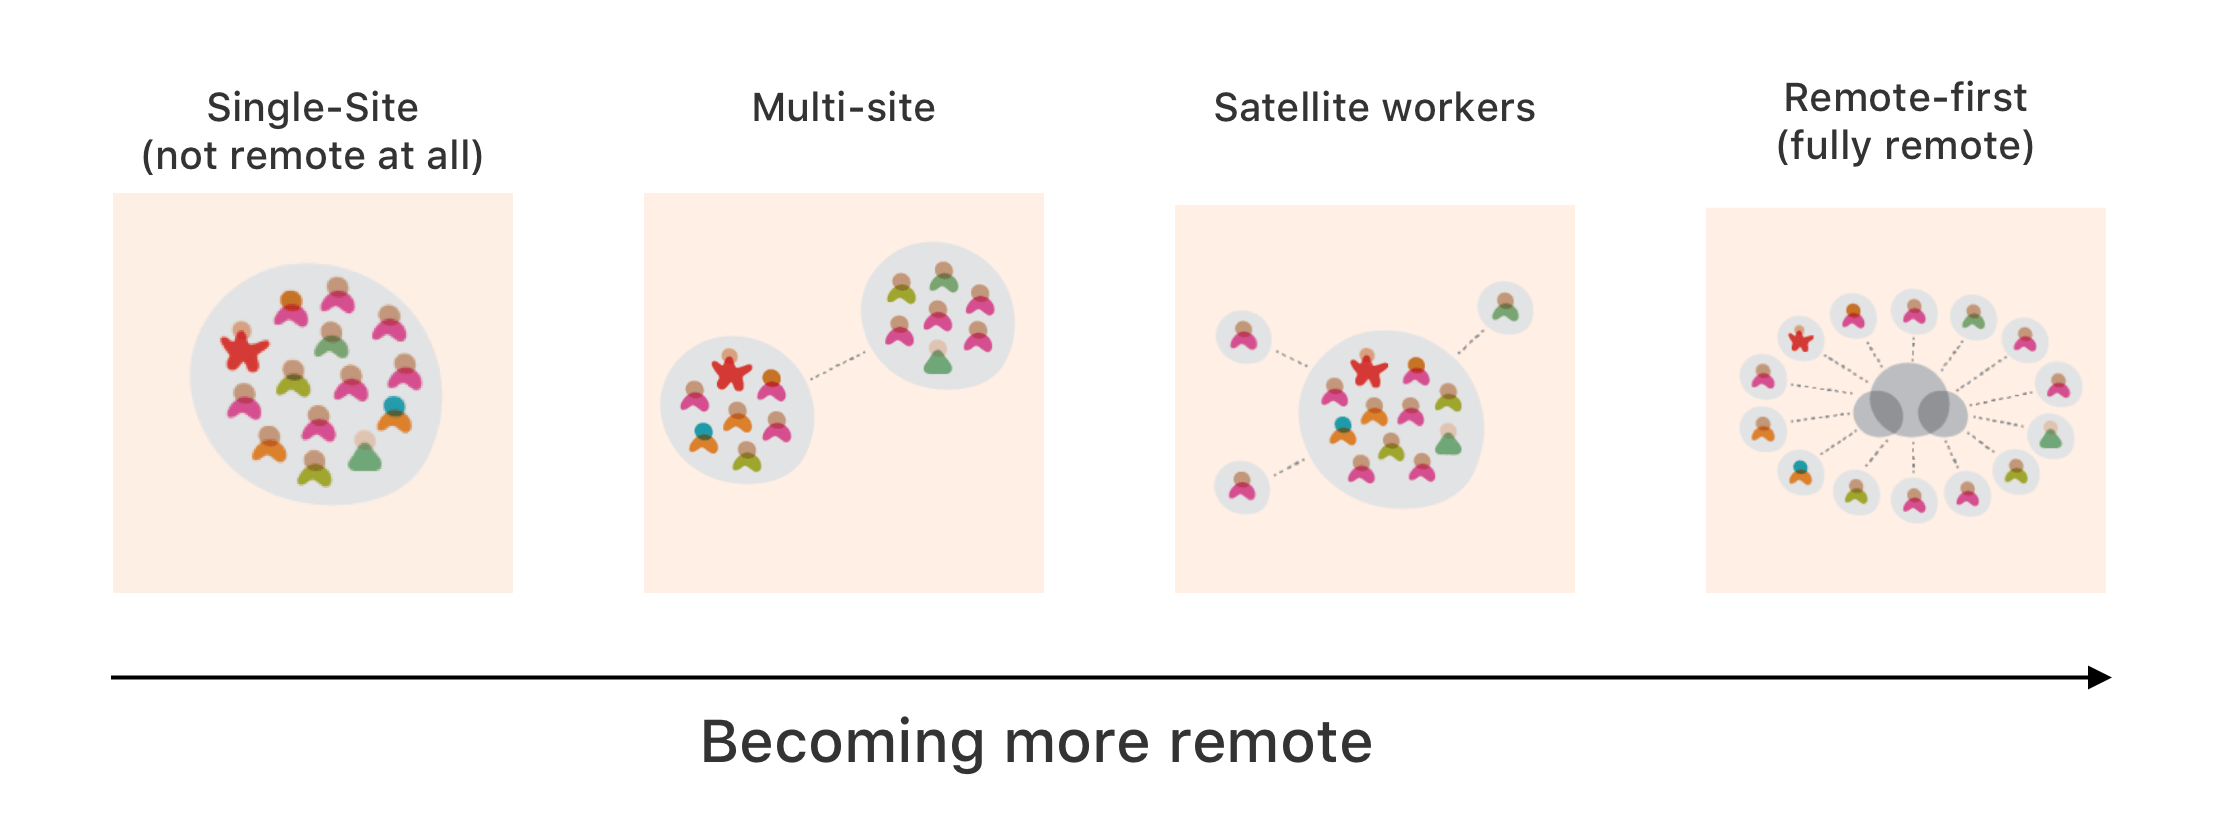 different models of remote teams